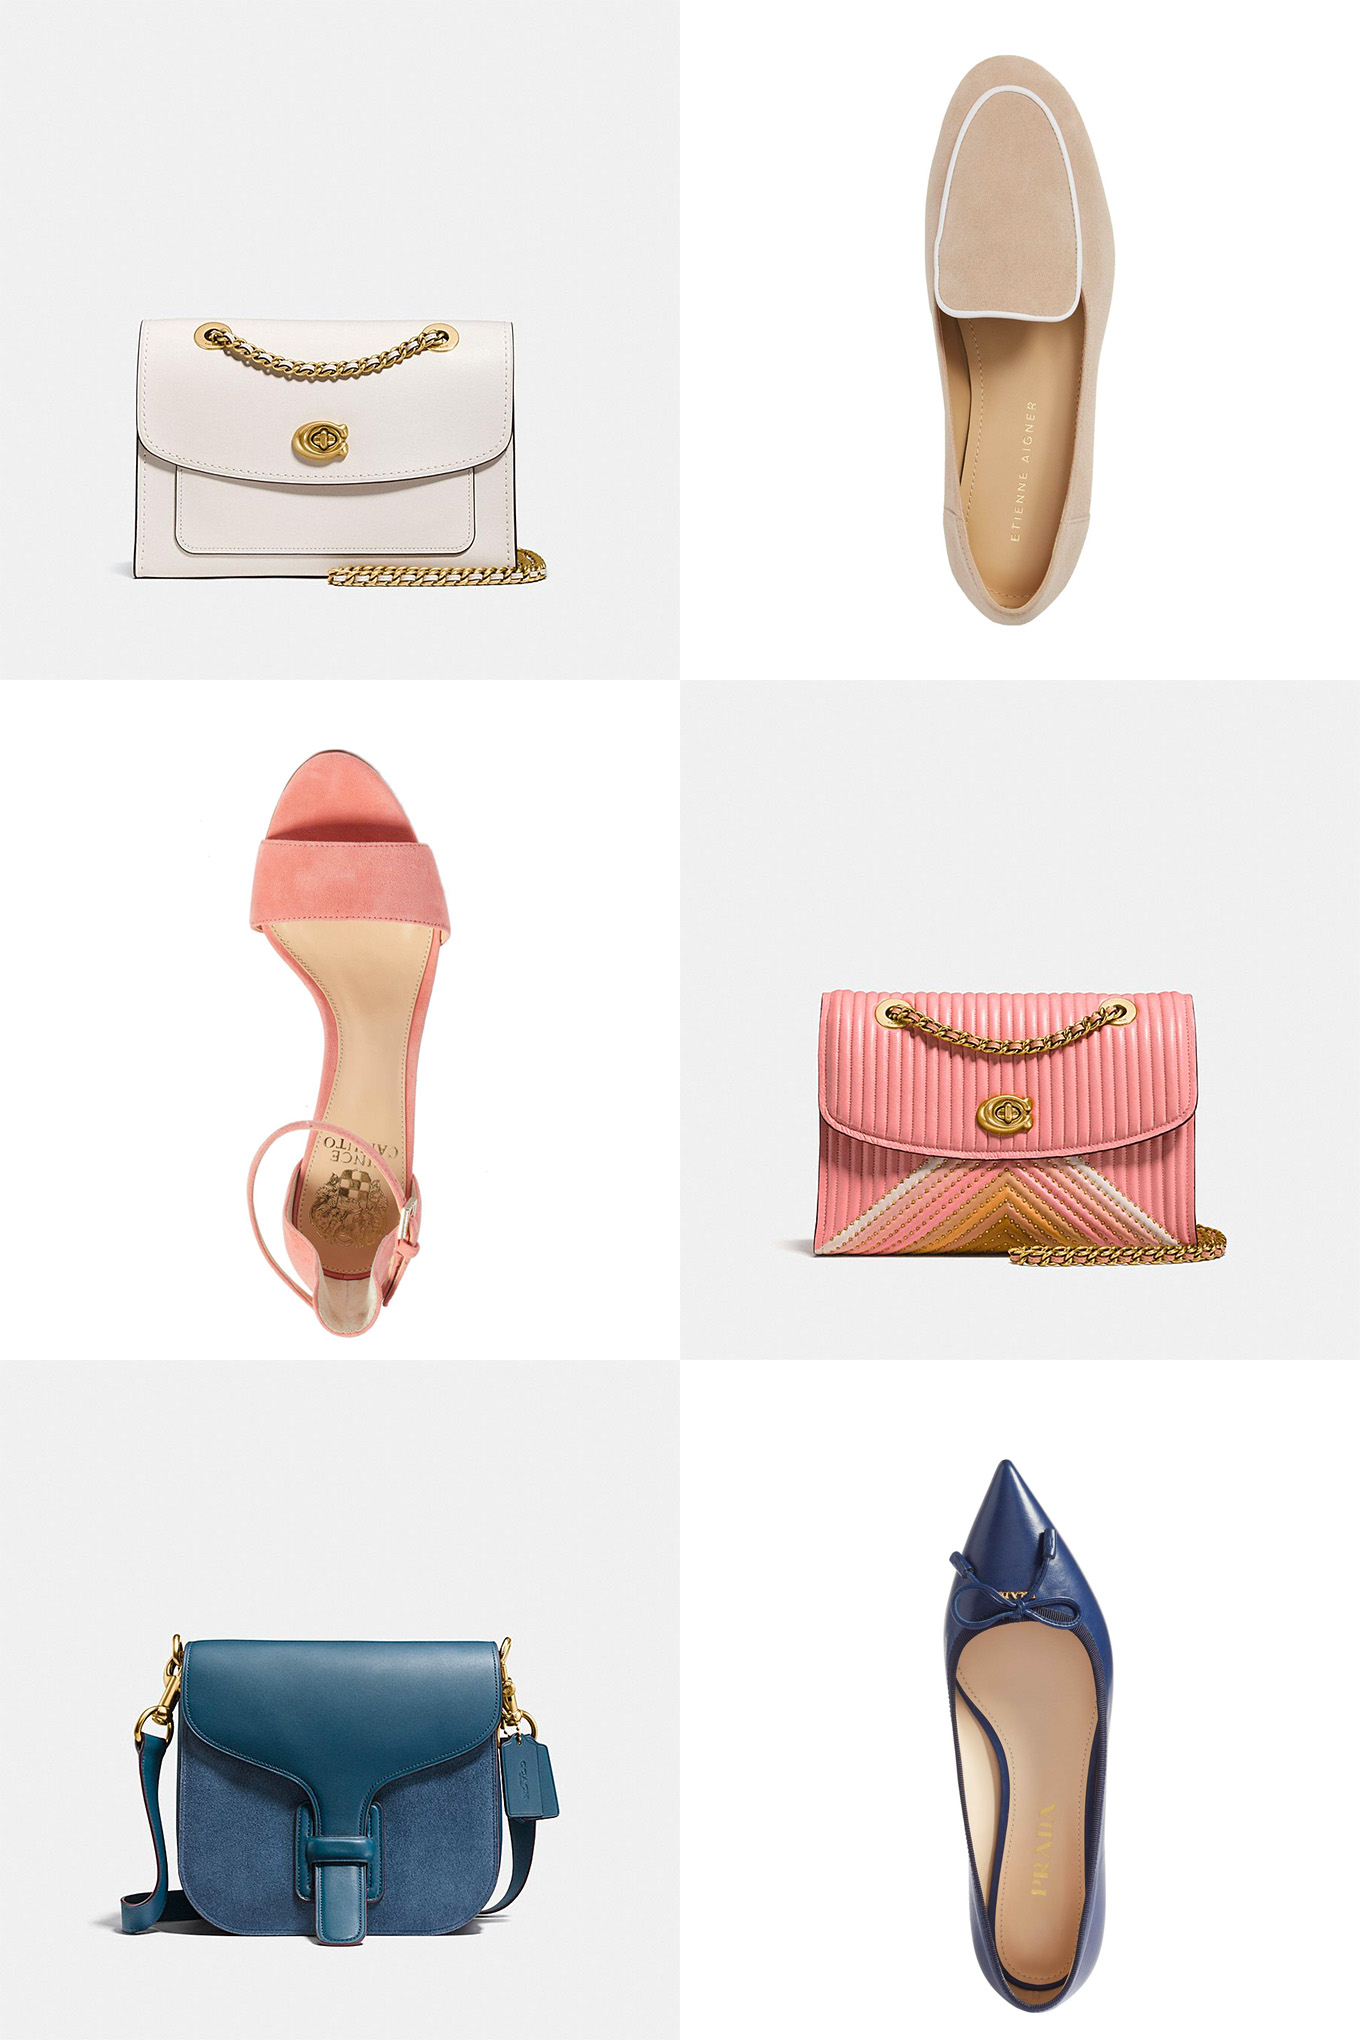 Remember when matching your shoes and your bag was a thing .. and then it wasn't? Ridgely Brode looks for matchy matchy bags and shoes on her blog, Ridgely's Radar.